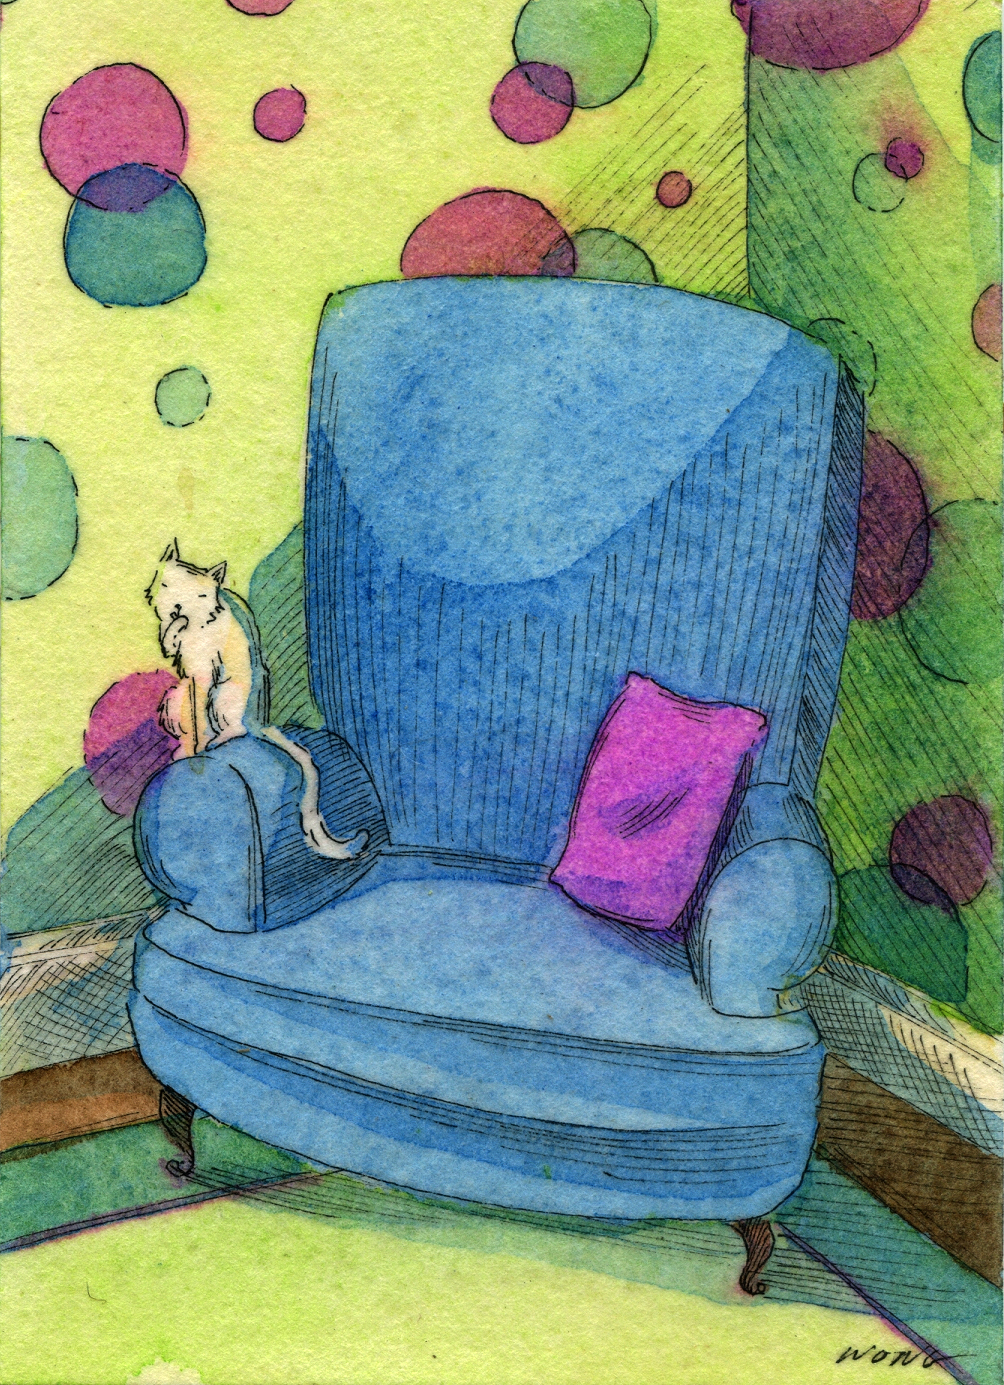 etsy.aceo.Sitting-on-thr-blue-chair